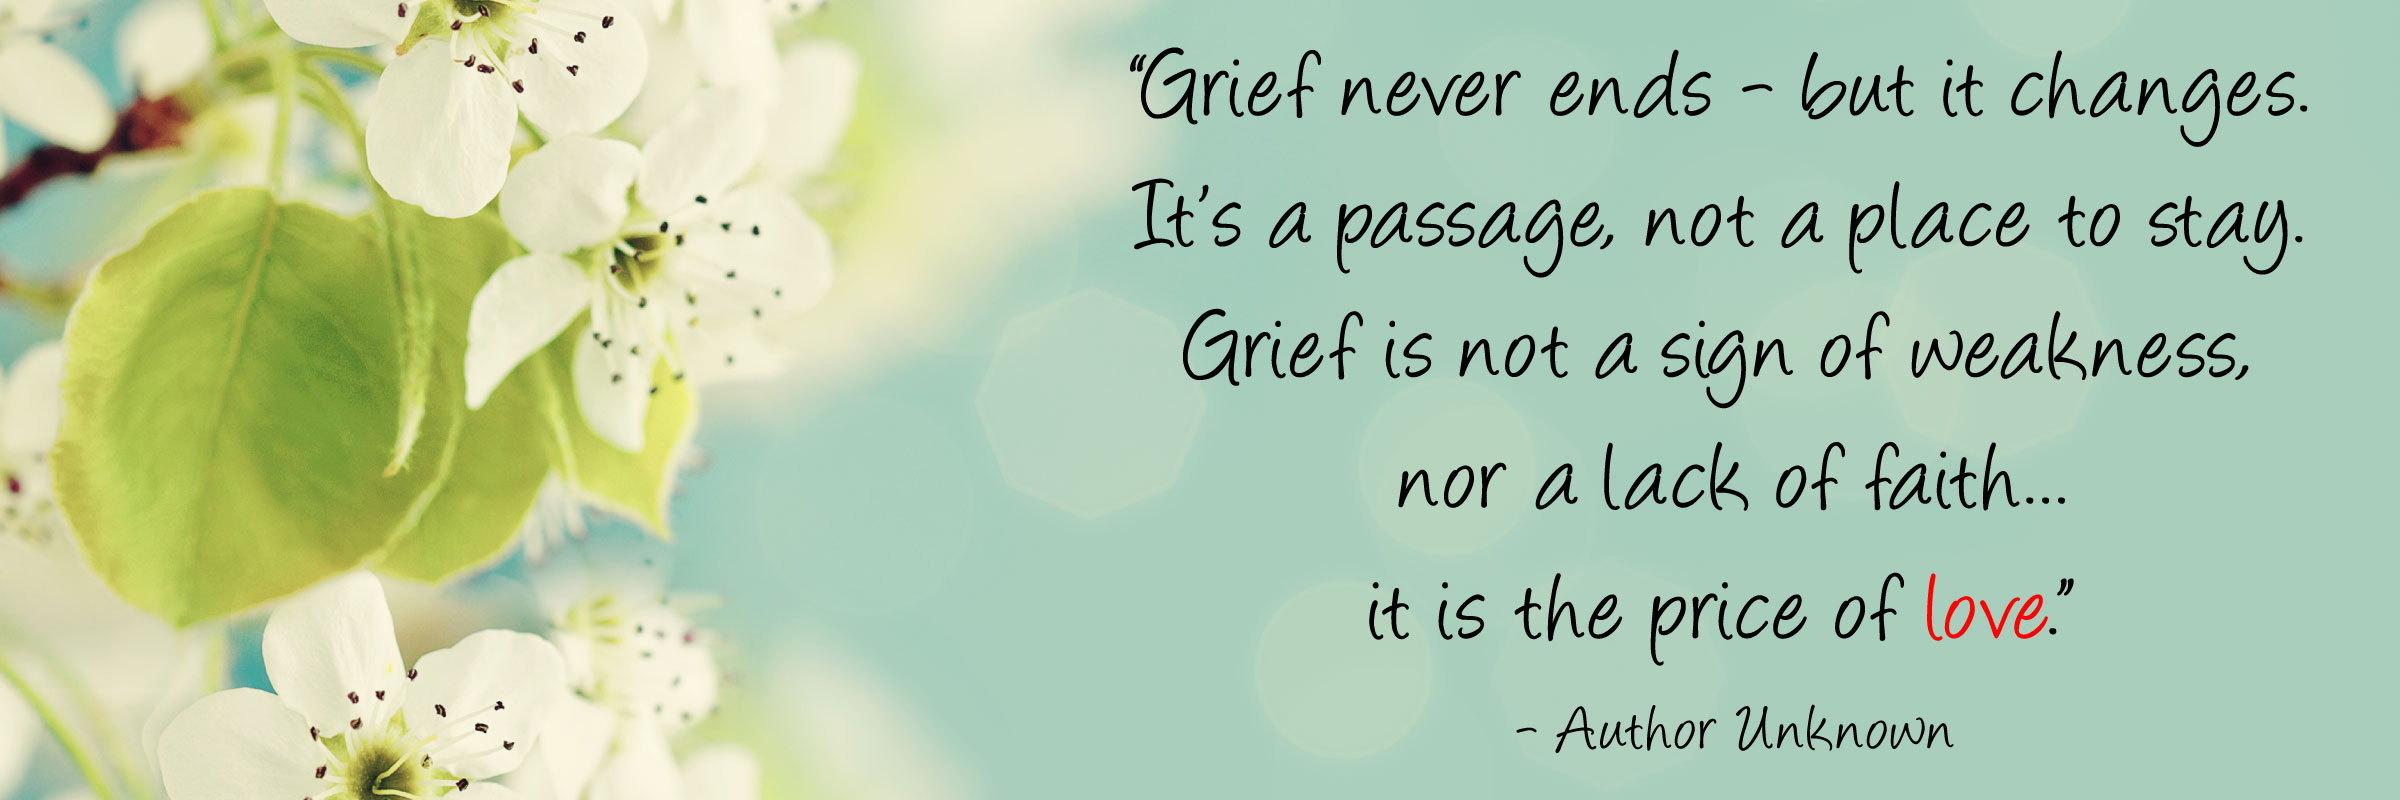 Grief-Quote.jpg